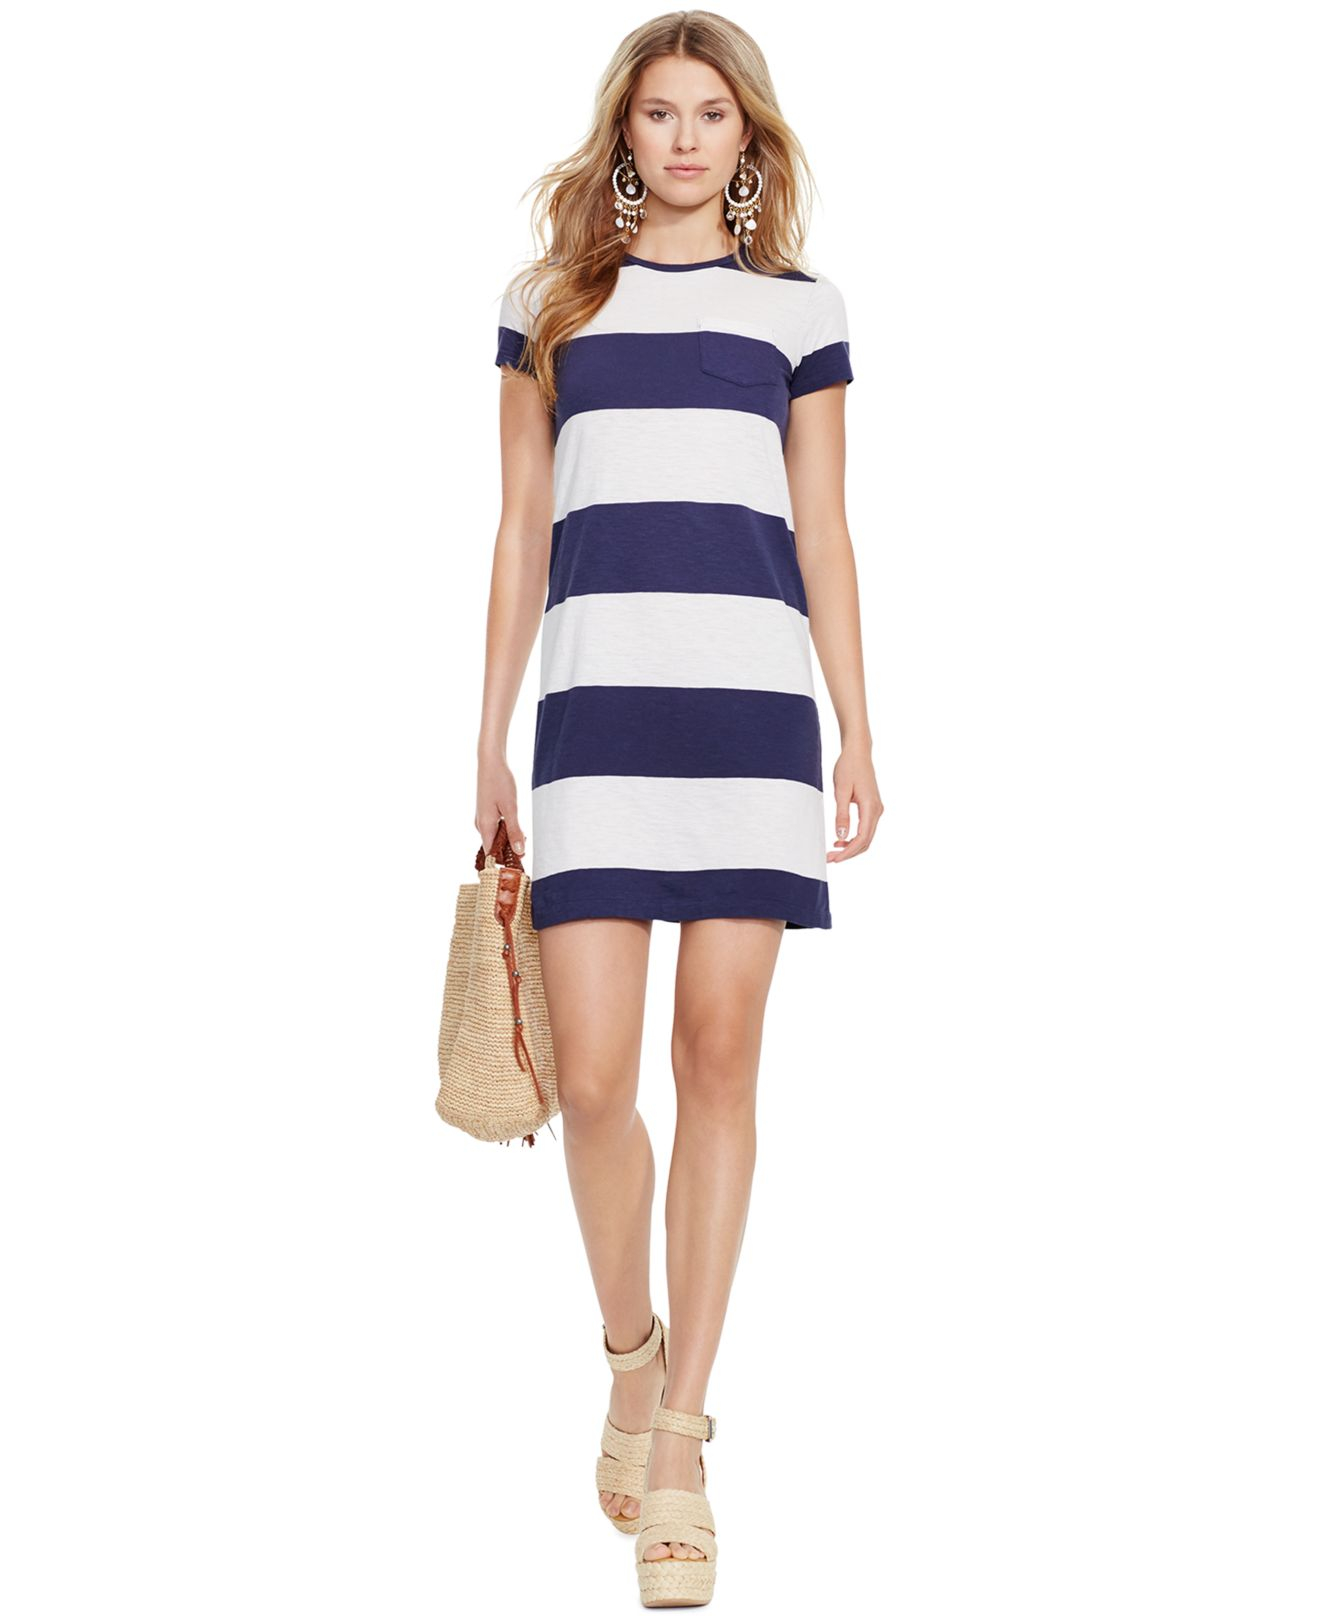 936b69589c Polo Ralph Lauren Blue Striped T-Shirt Dress